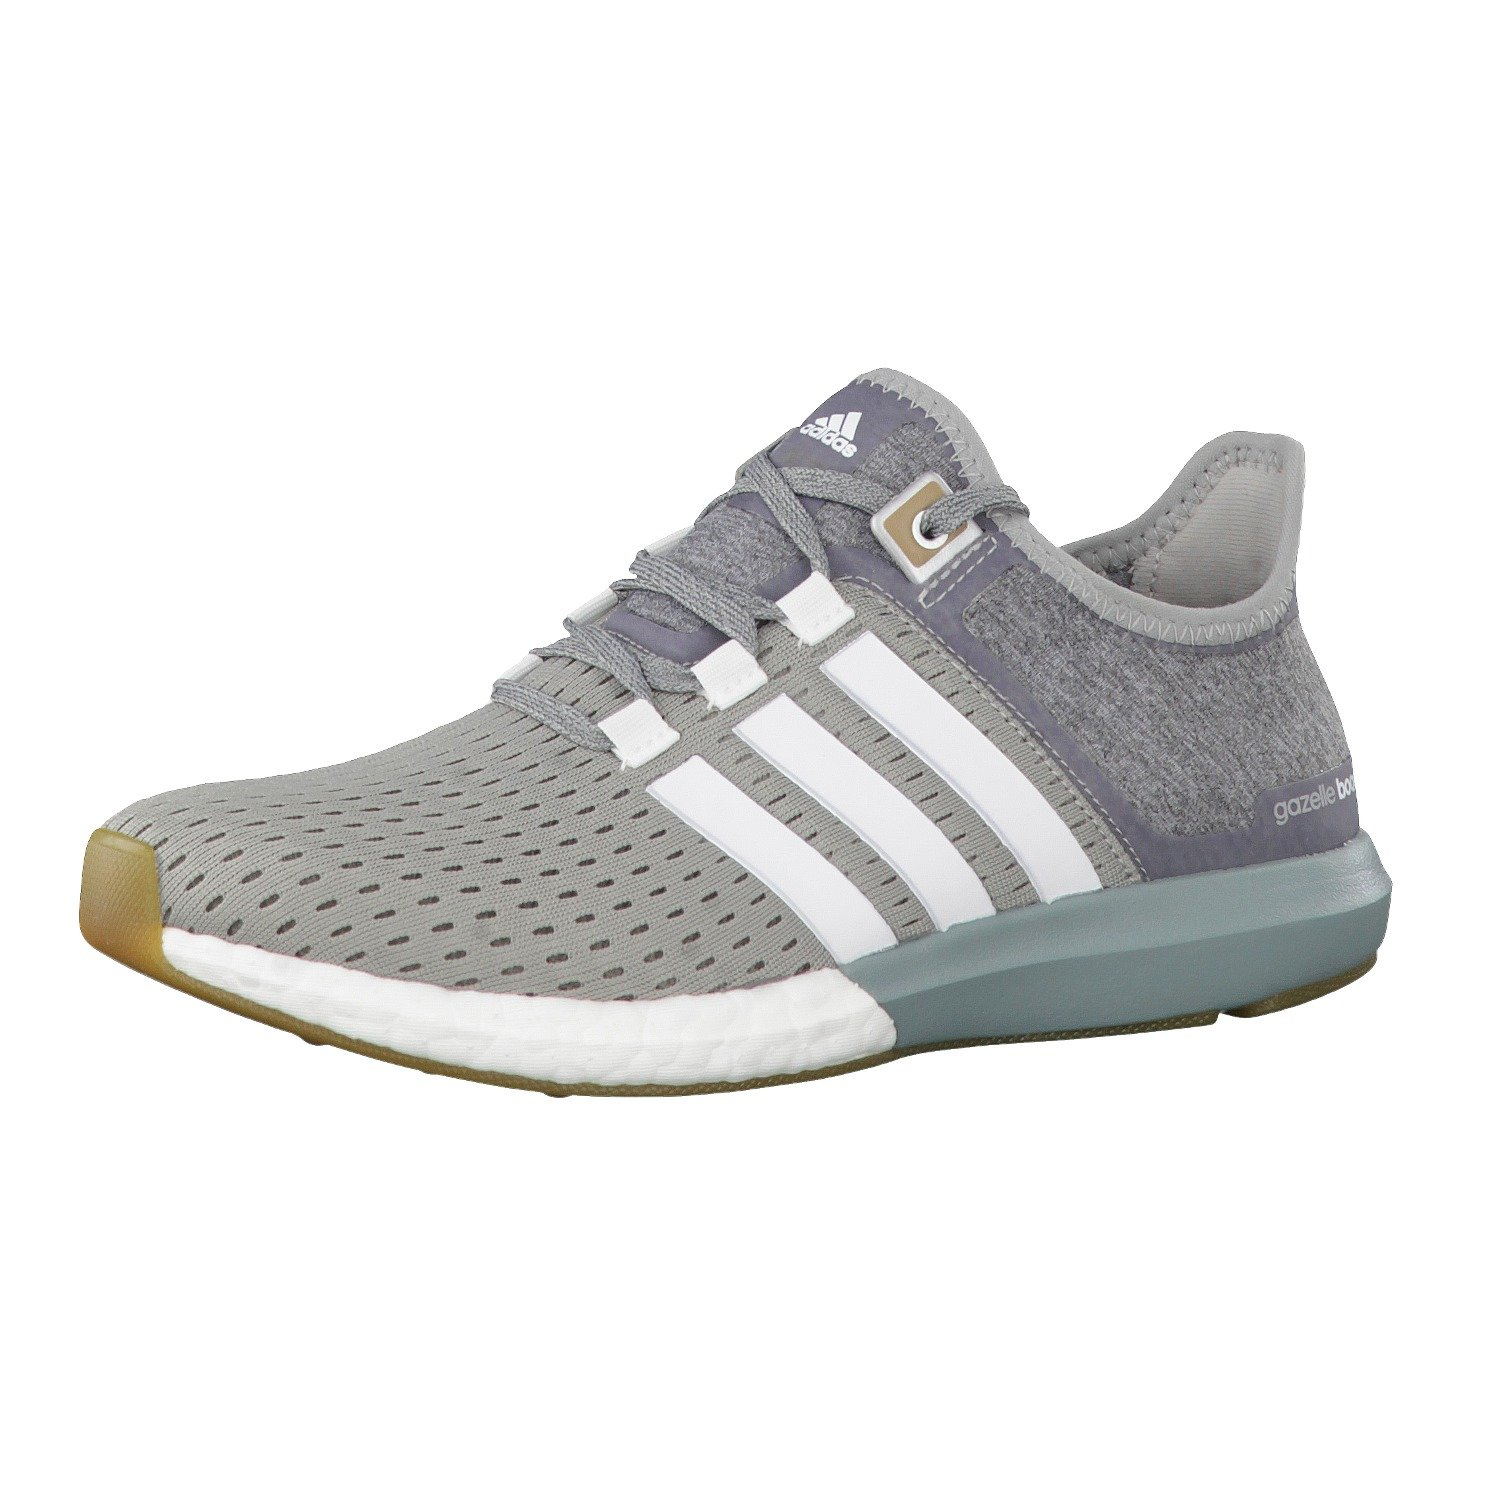 best loved 349b6 9b85d Adidas Climachill Gazelle Boost Womens Laufschuhe - AW15